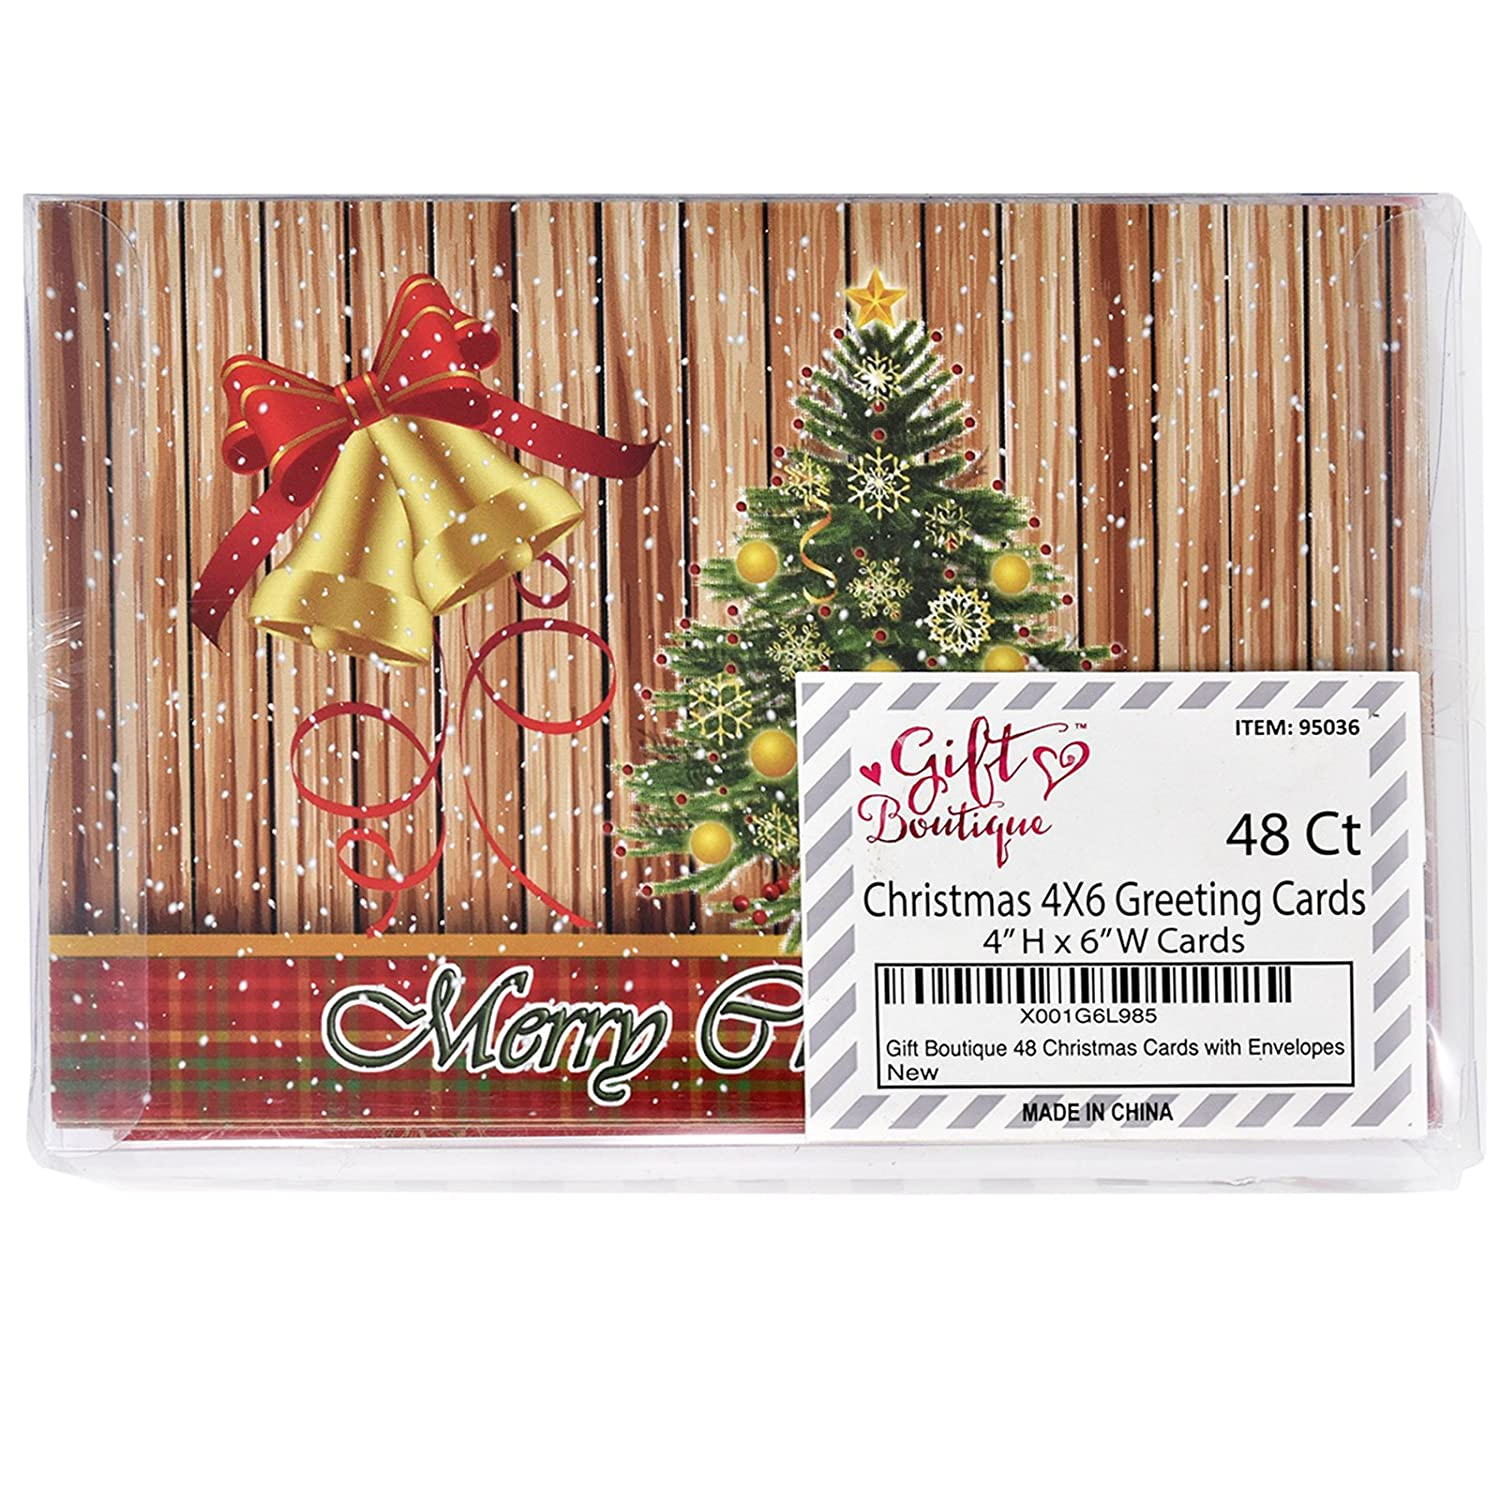 Amazon.com : 48 Christmas Greeting Cards with Envelopes Assorted ...